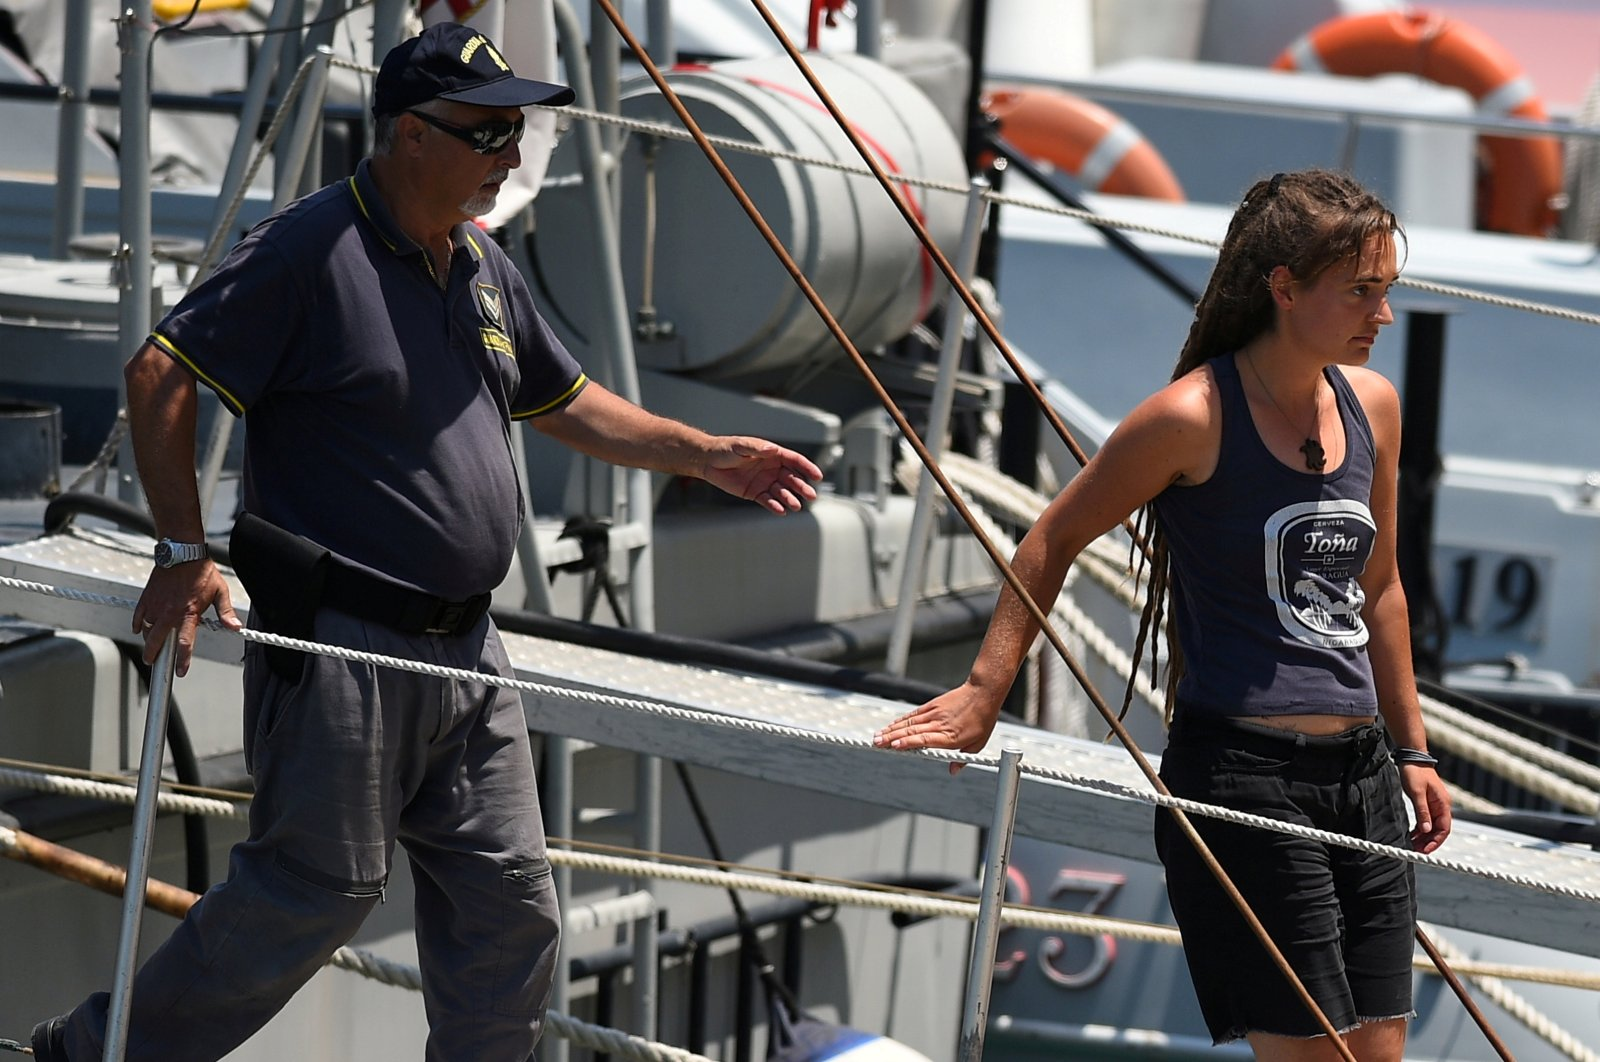 Carola Rackete, Sea-Watch 3 captain, disembarks from a Finance police boat, in Porto Empedocle, Italy July 1, 2019. (REUTERS File Photo)